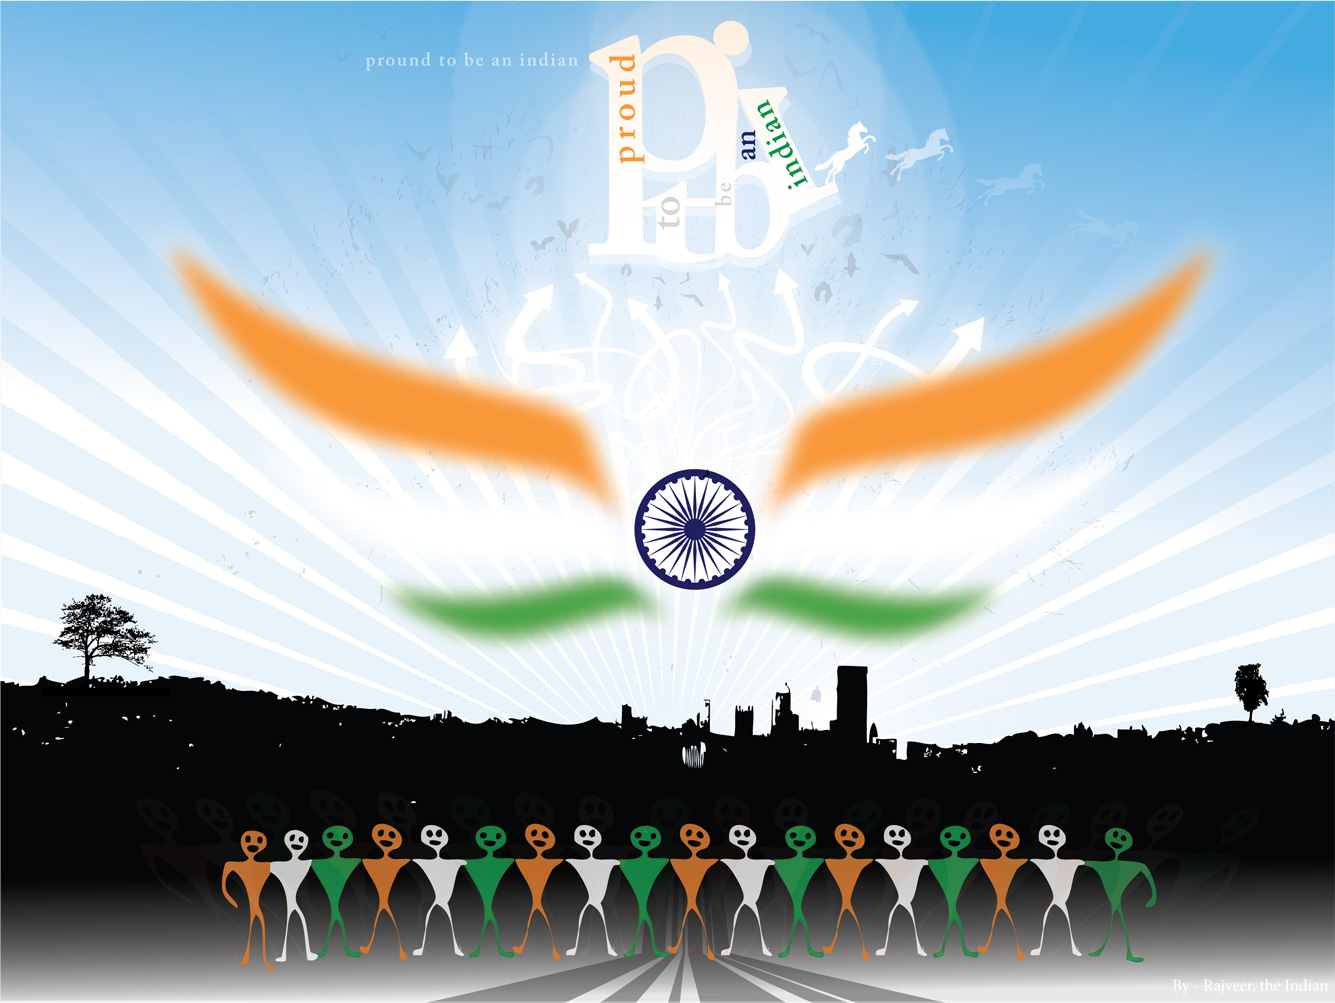 http://3.bp.blogspot.com/-LdlzXxna9Jc/T52ErZSmEuI/AAAAAAAAAbc/7AbyVZMFtGI/s1600/proud_to_be_an_indian.jpg